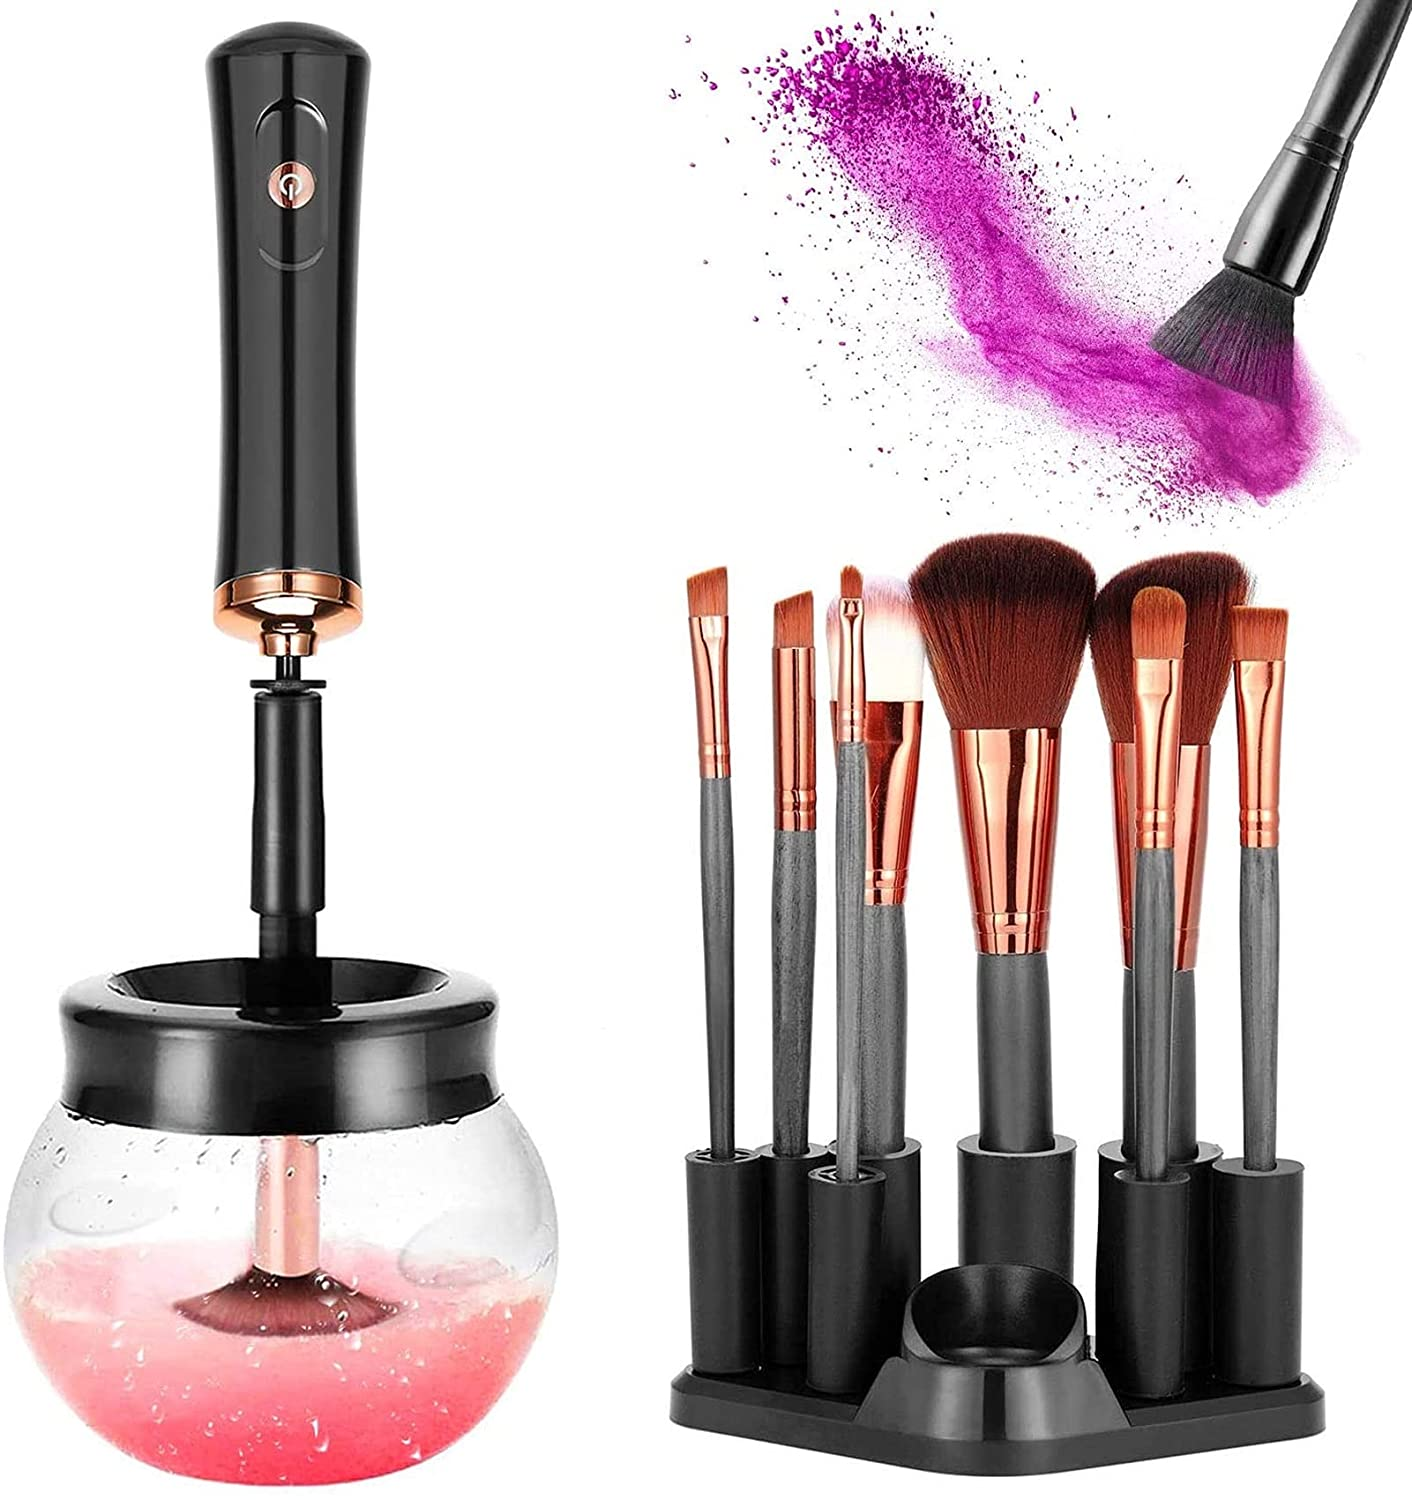 Electric Max 86% OFF Inexpensive Makeup Brush Cleaner and Cosmeti Machine Dryer Upgraded